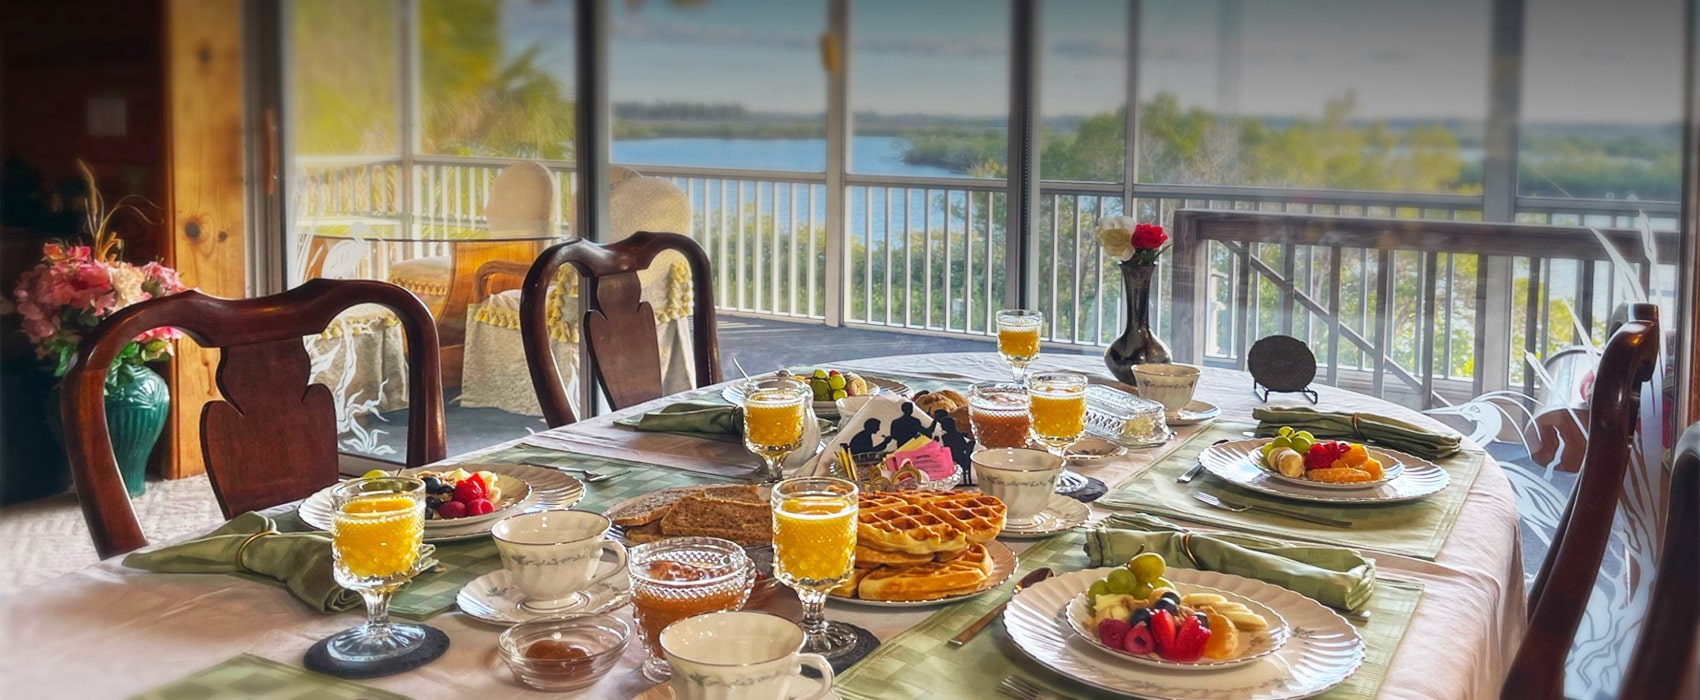 breakfast at Crystal River Lullaby B&B